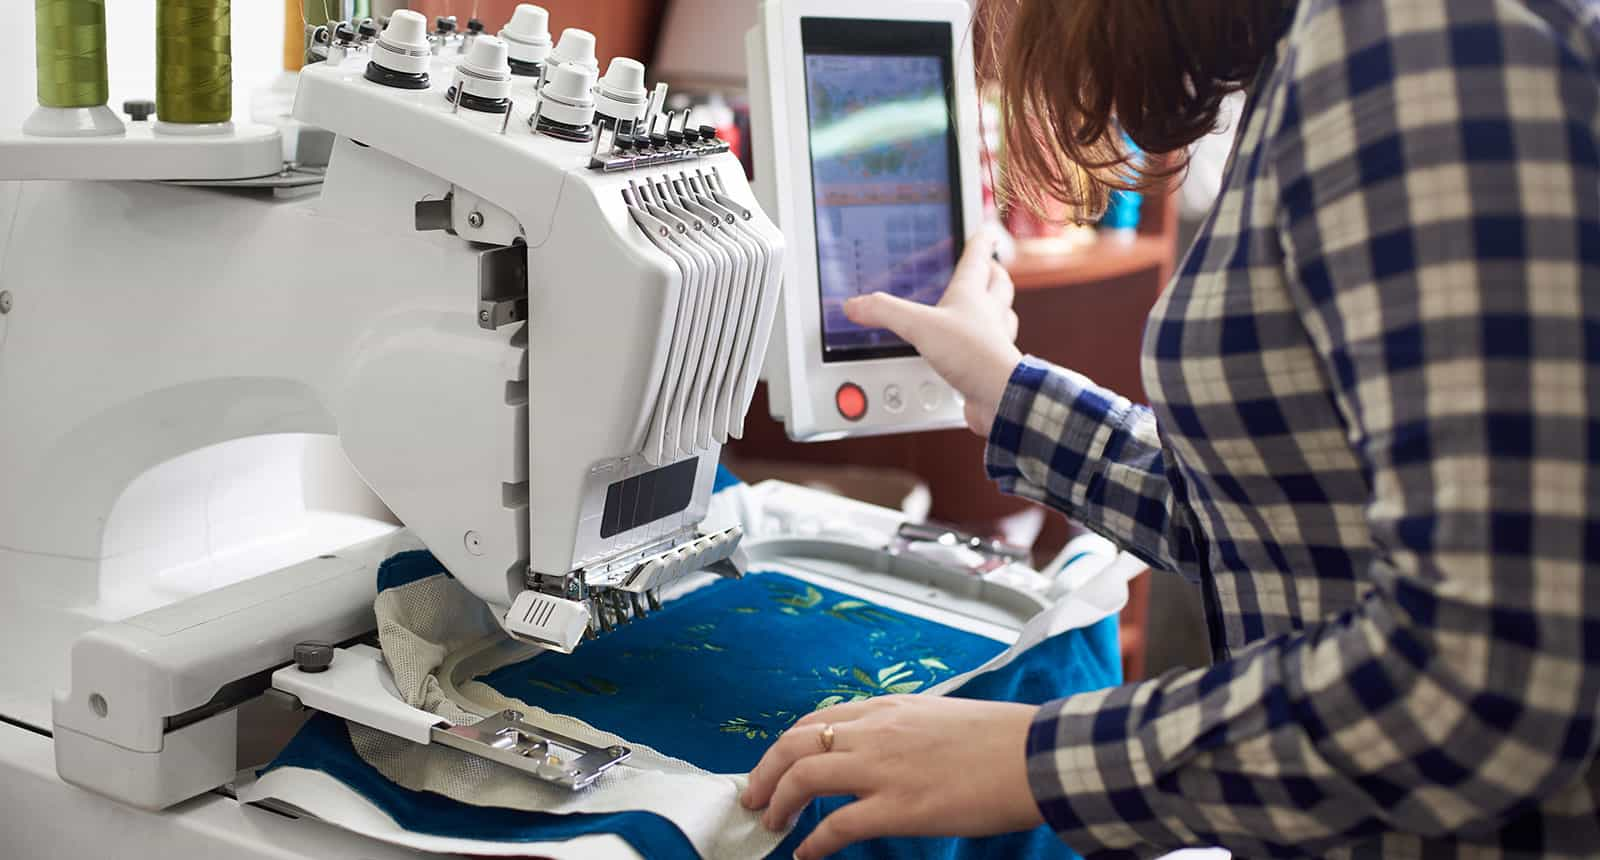 Top 16 Best Embroidery Software Reviews 2020 Project Sewn